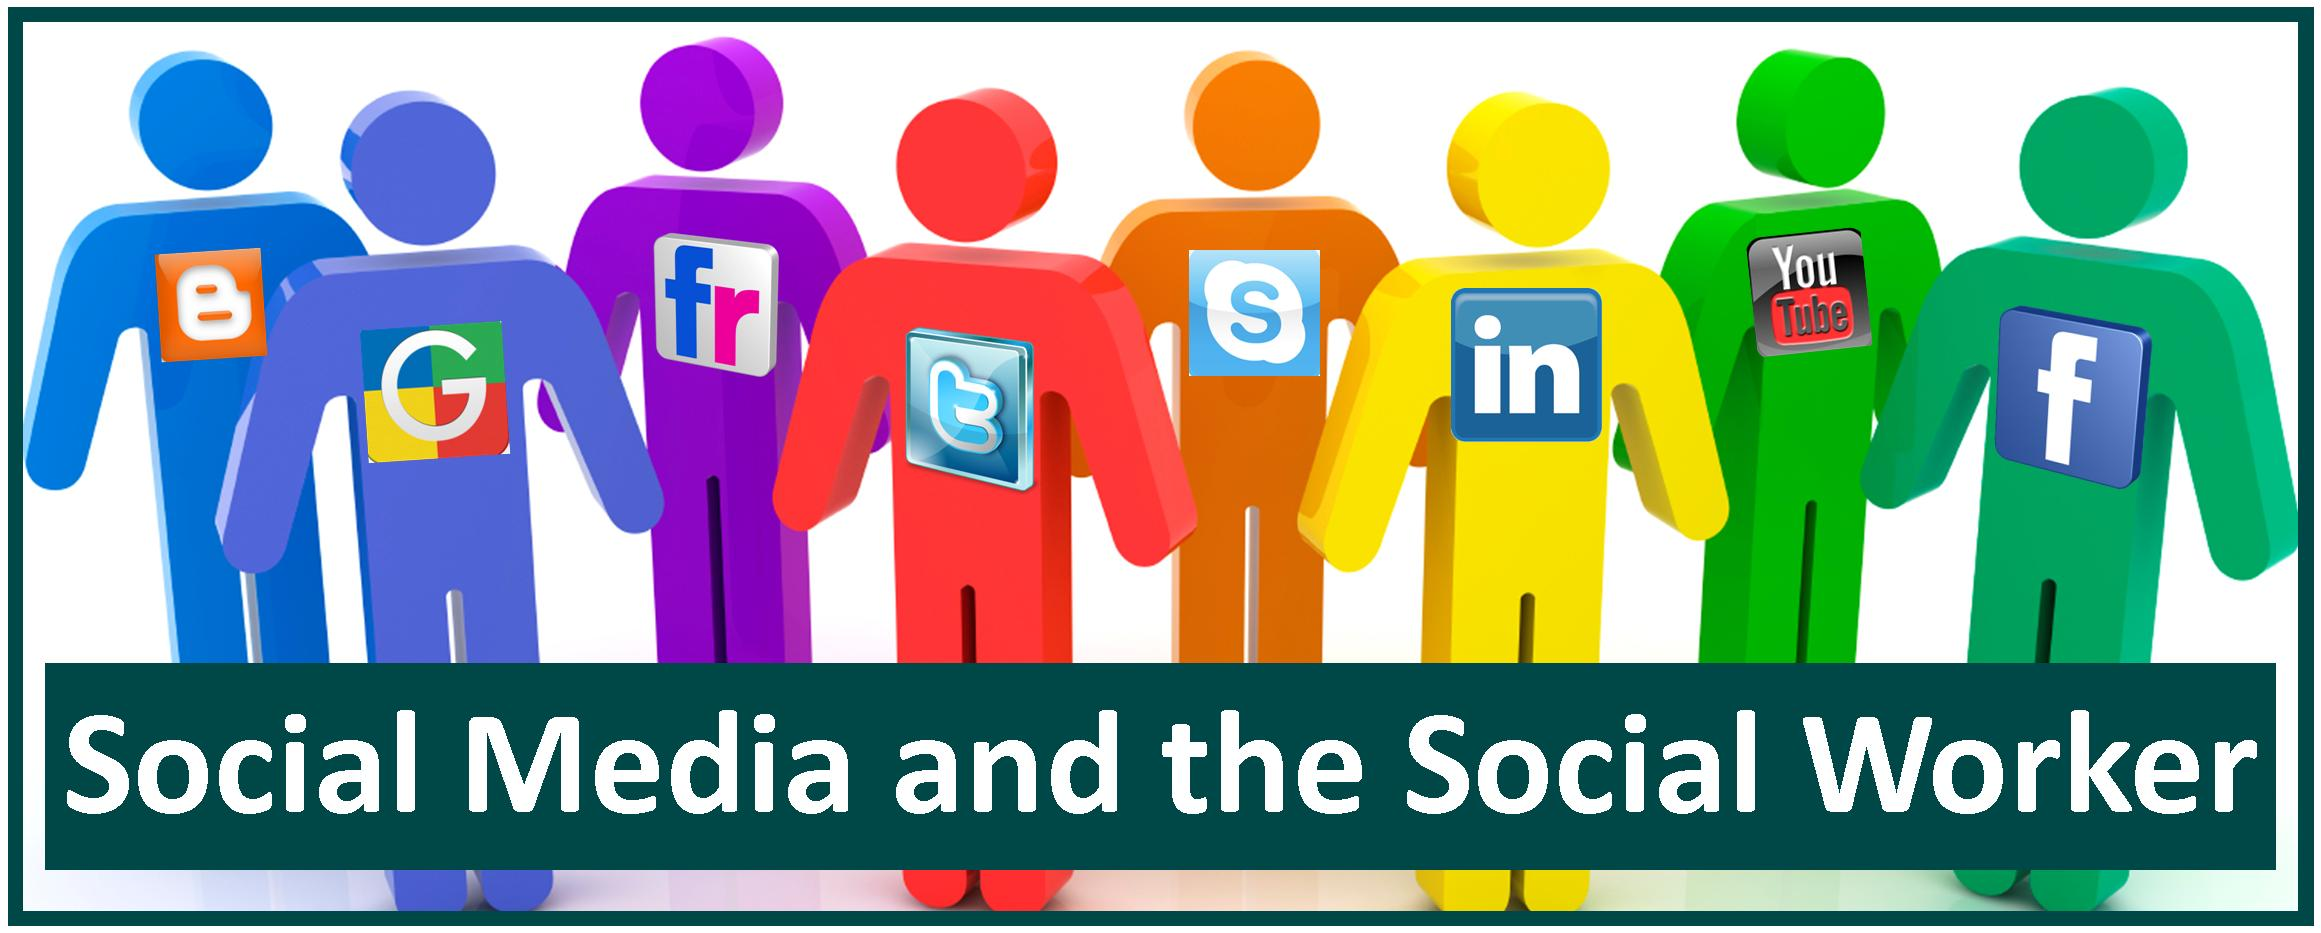 social networking in our society Social media has become a key part of our culture now here are 10 ways it has  changed us, five good ones and five less appealing ways.